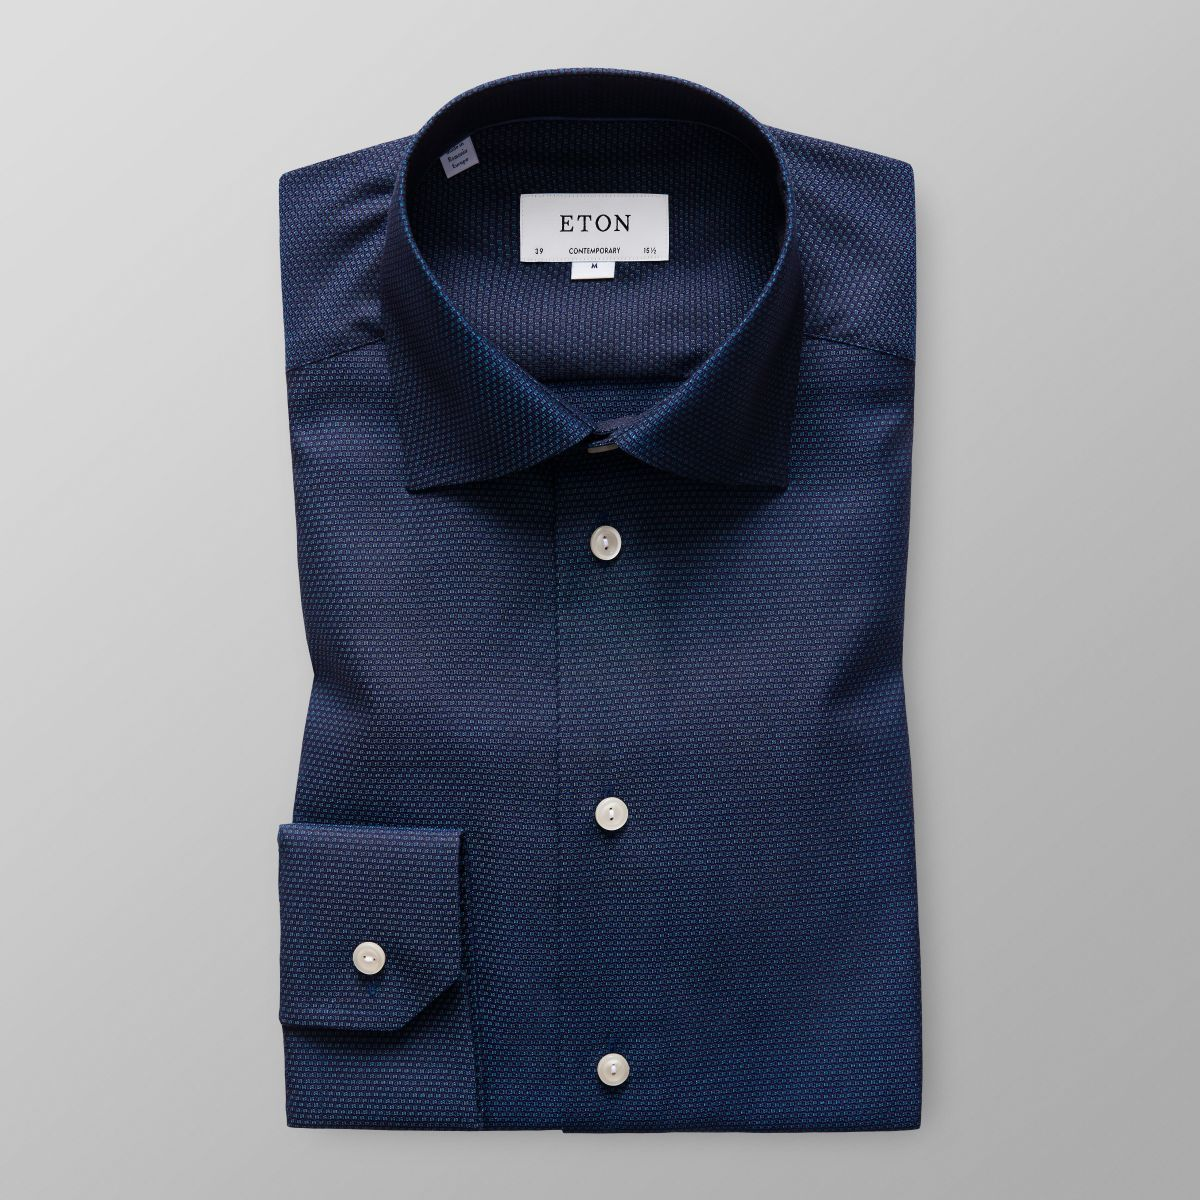 Latest Collections Sale Online Contemporary fit Navy Striped Shirt Eton Buy Cheap Manchester QYHsmeN